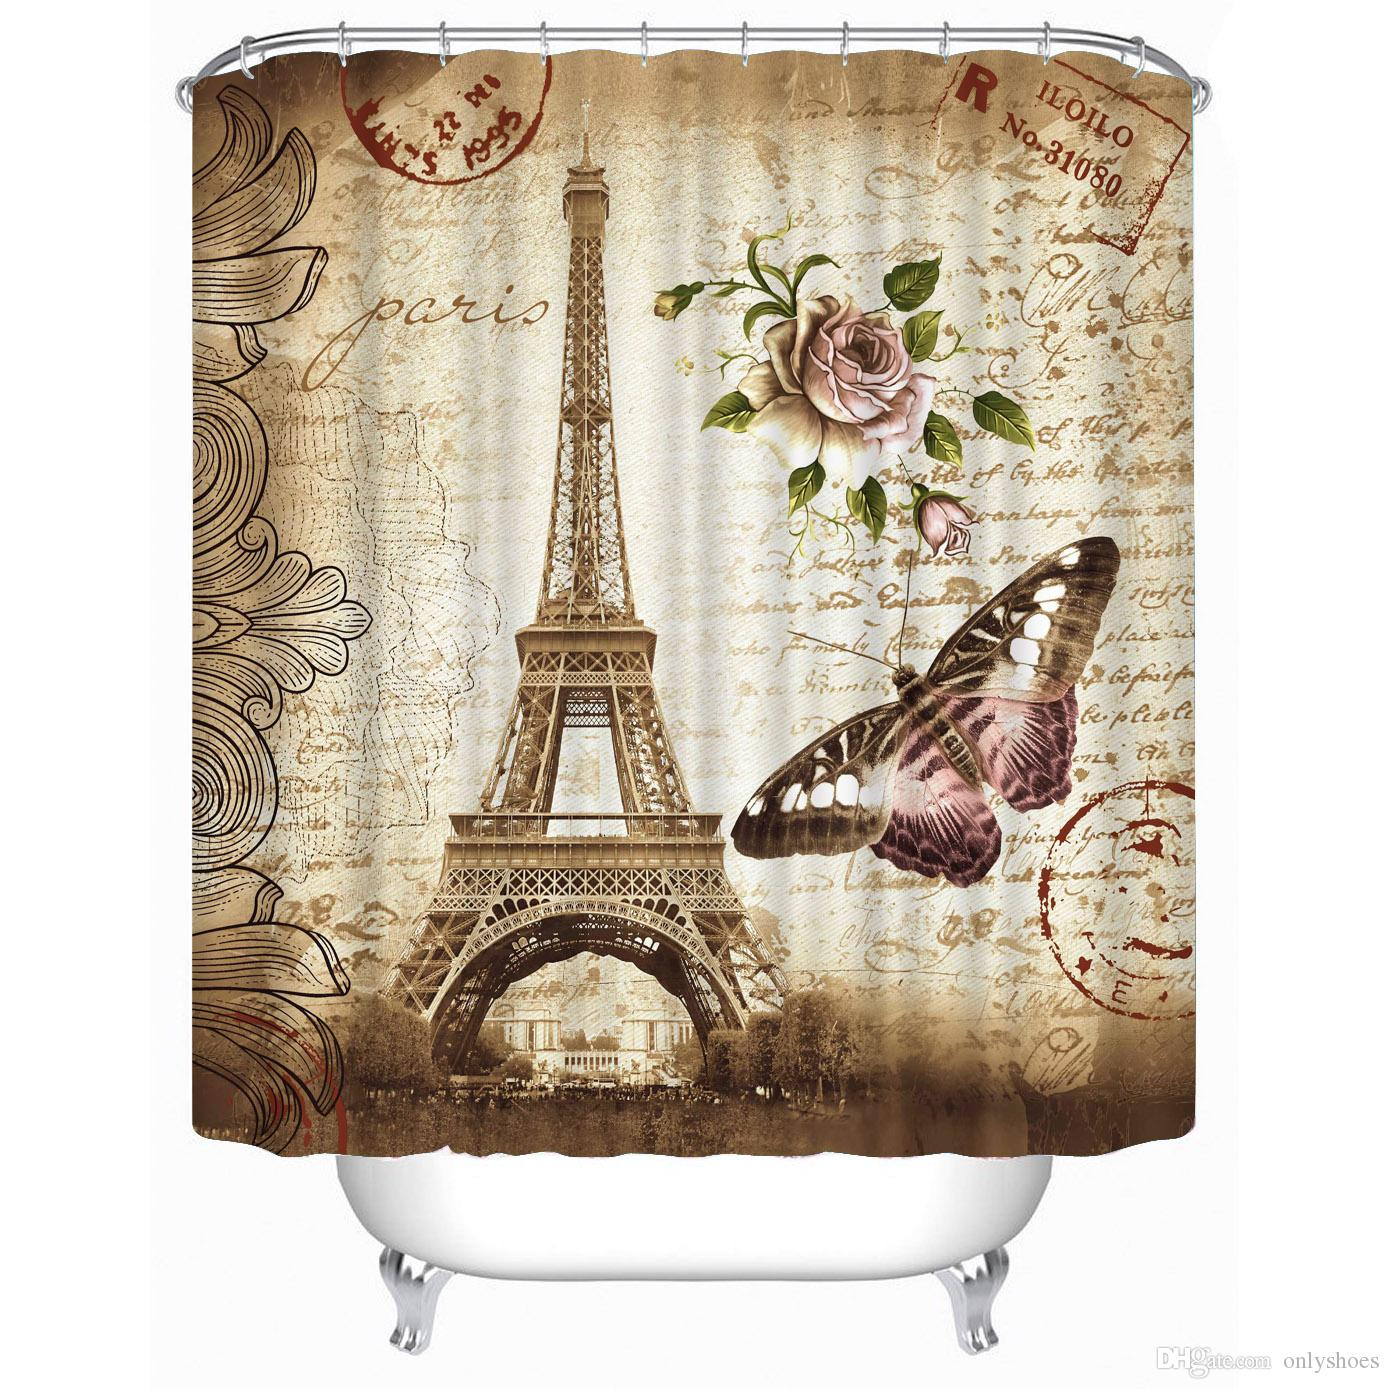 2018 Customs 36 48 60 66 72 80 W X H Inch Shower Curtain Rose Butterfly And Eiffel Waterproof Polyester Fabric From Onlyshoes